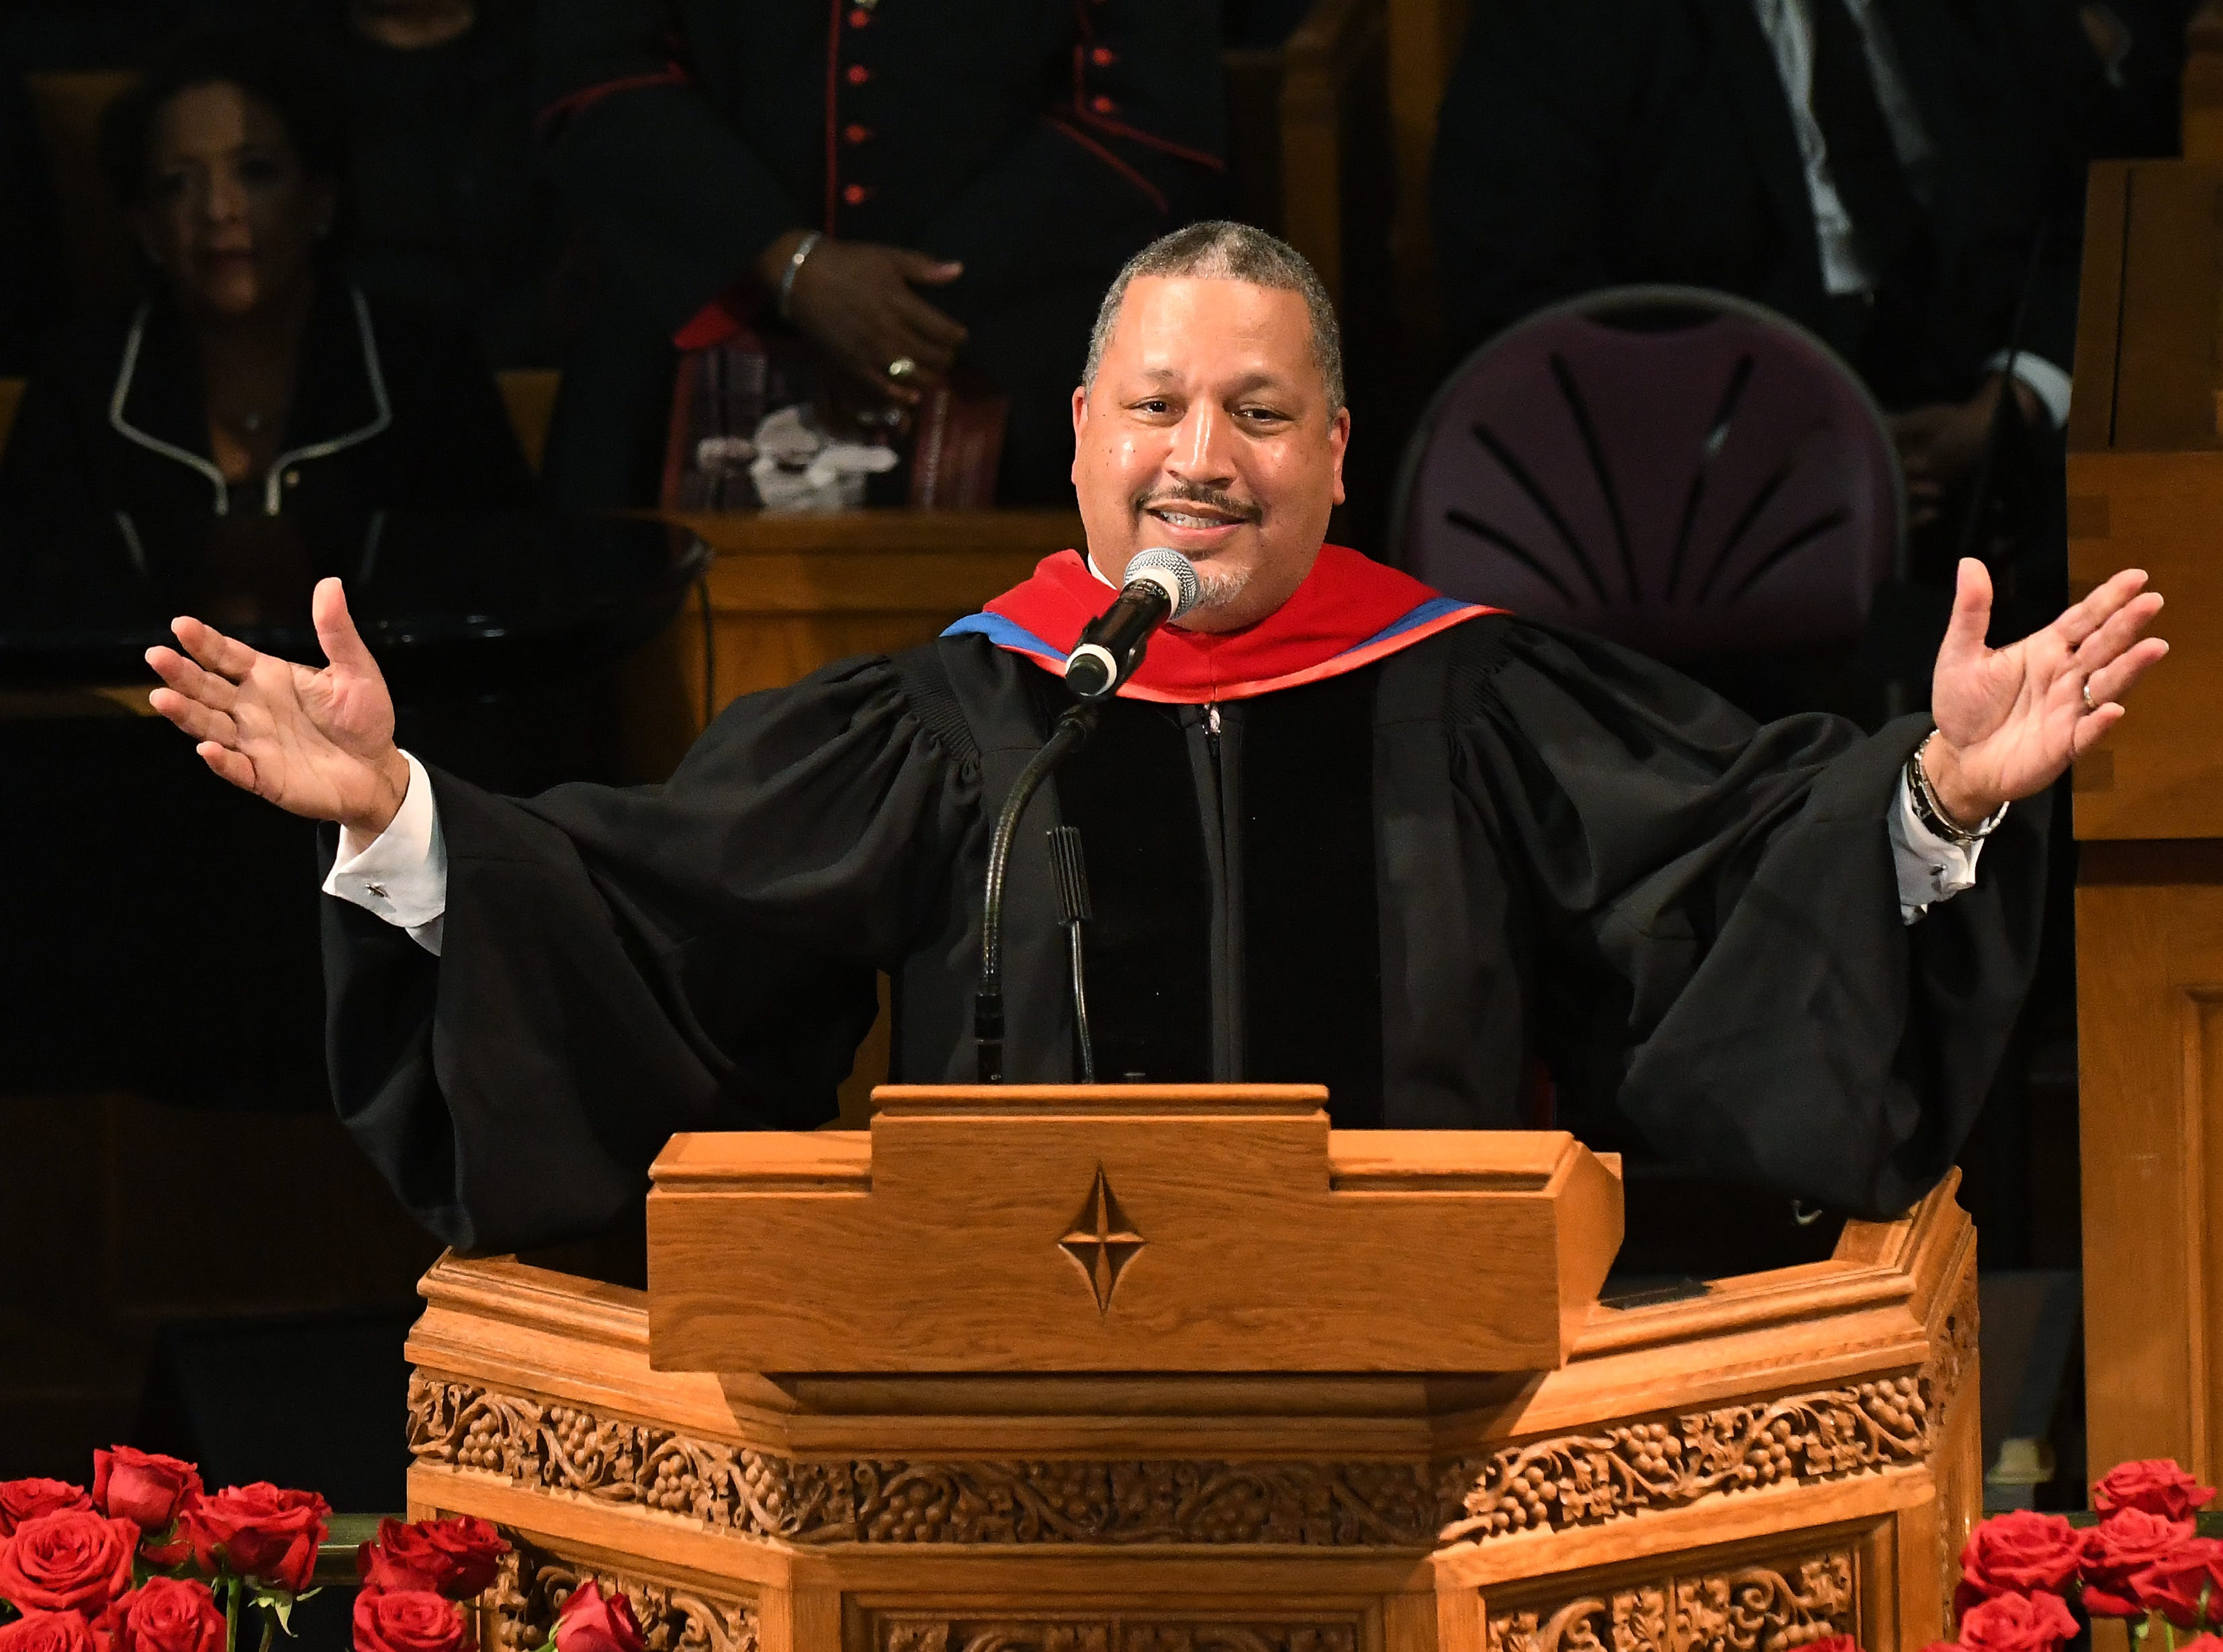 Rev. Dr. Lance D. Watson, Senior Pastor of The Saint Paul's Baptist Church in Virginia brings the congregation to their feet during a second eulogy for Judge Damon Keith.